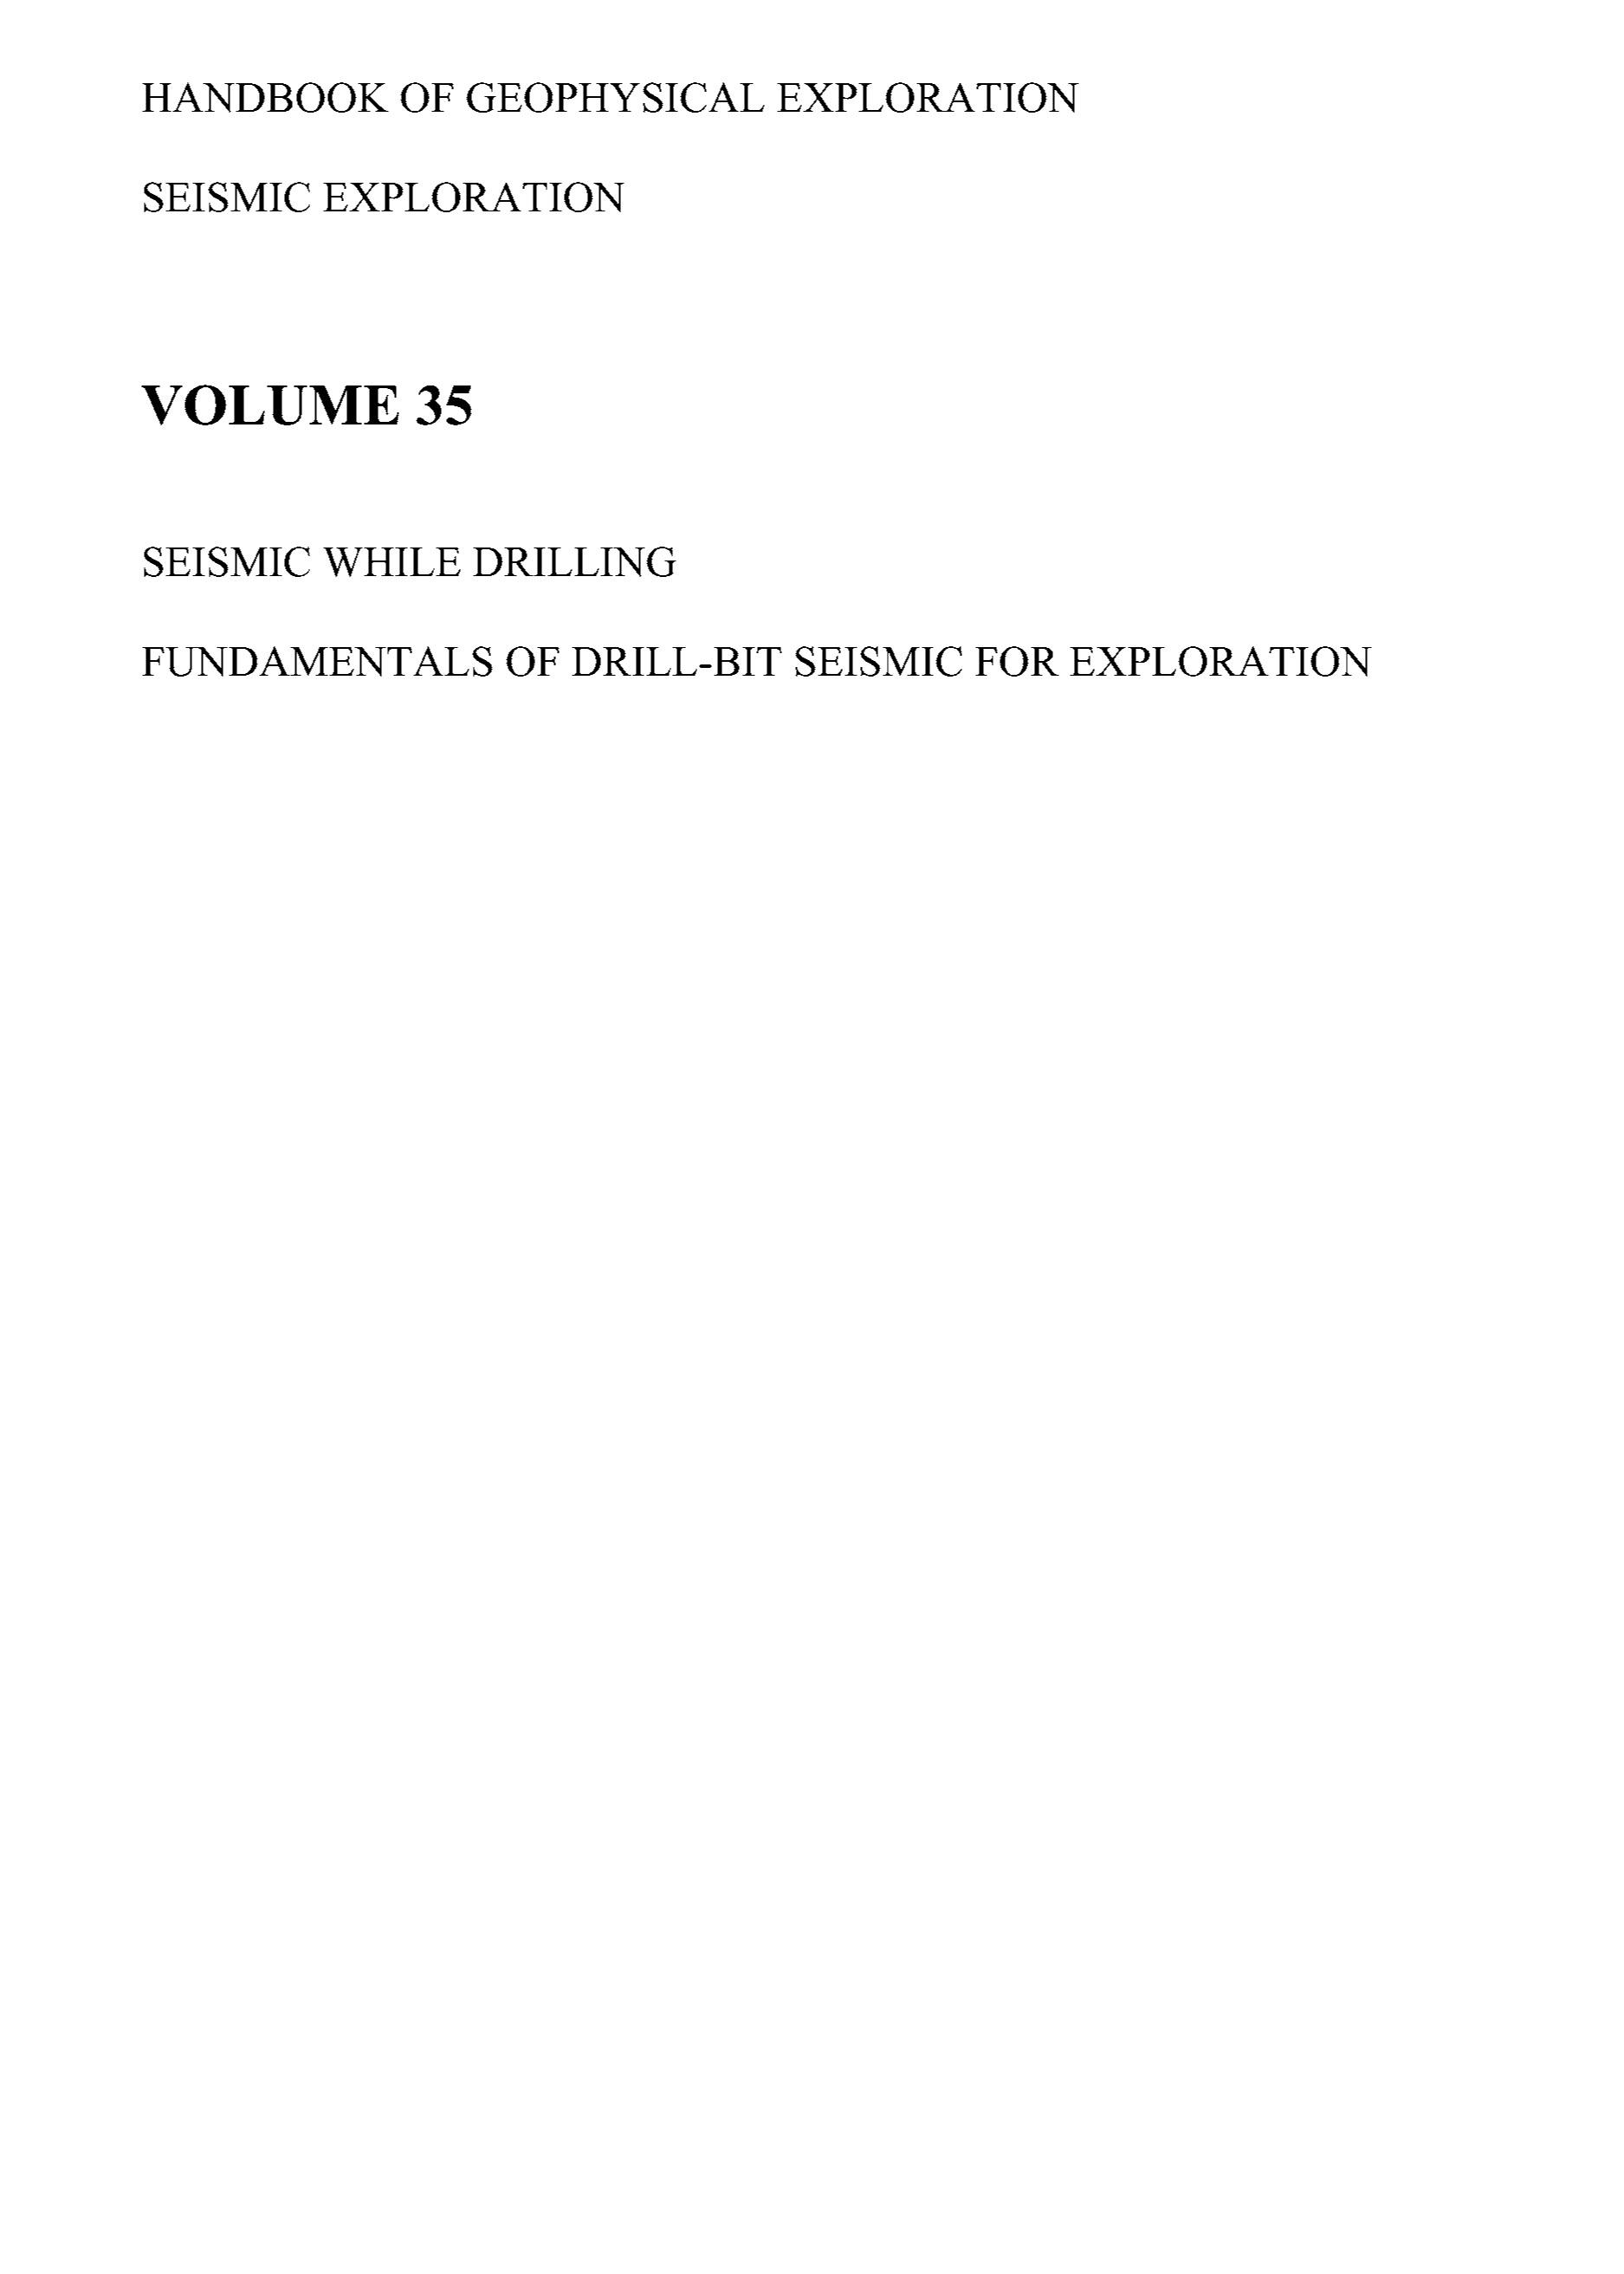 Seismic While Drilling: Fundamentals of Drill-Bit Seismic for Exploration EB9780080474342